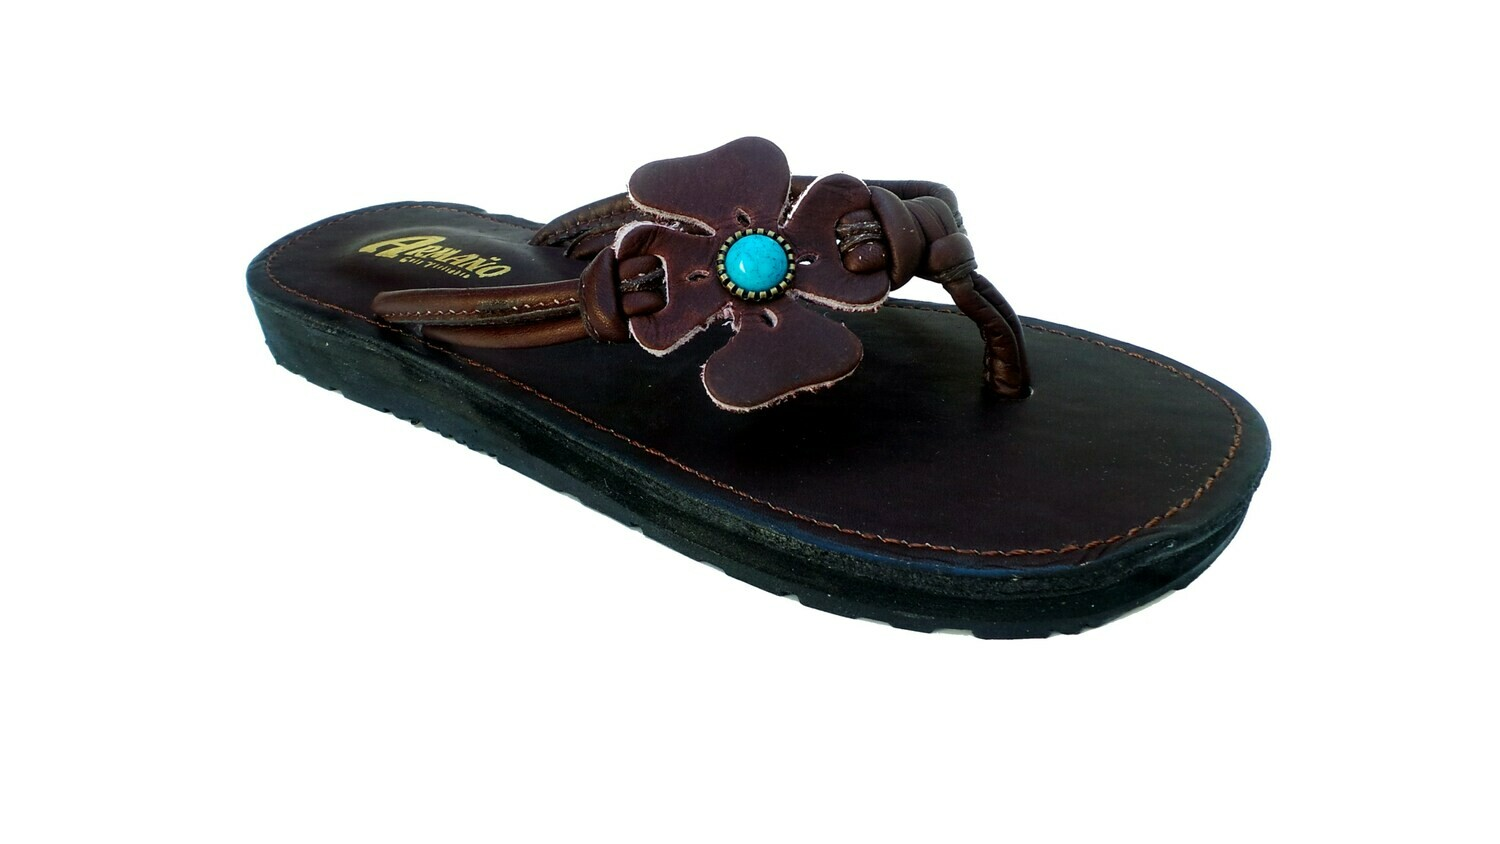 Sandale en cuir FLOWER marron